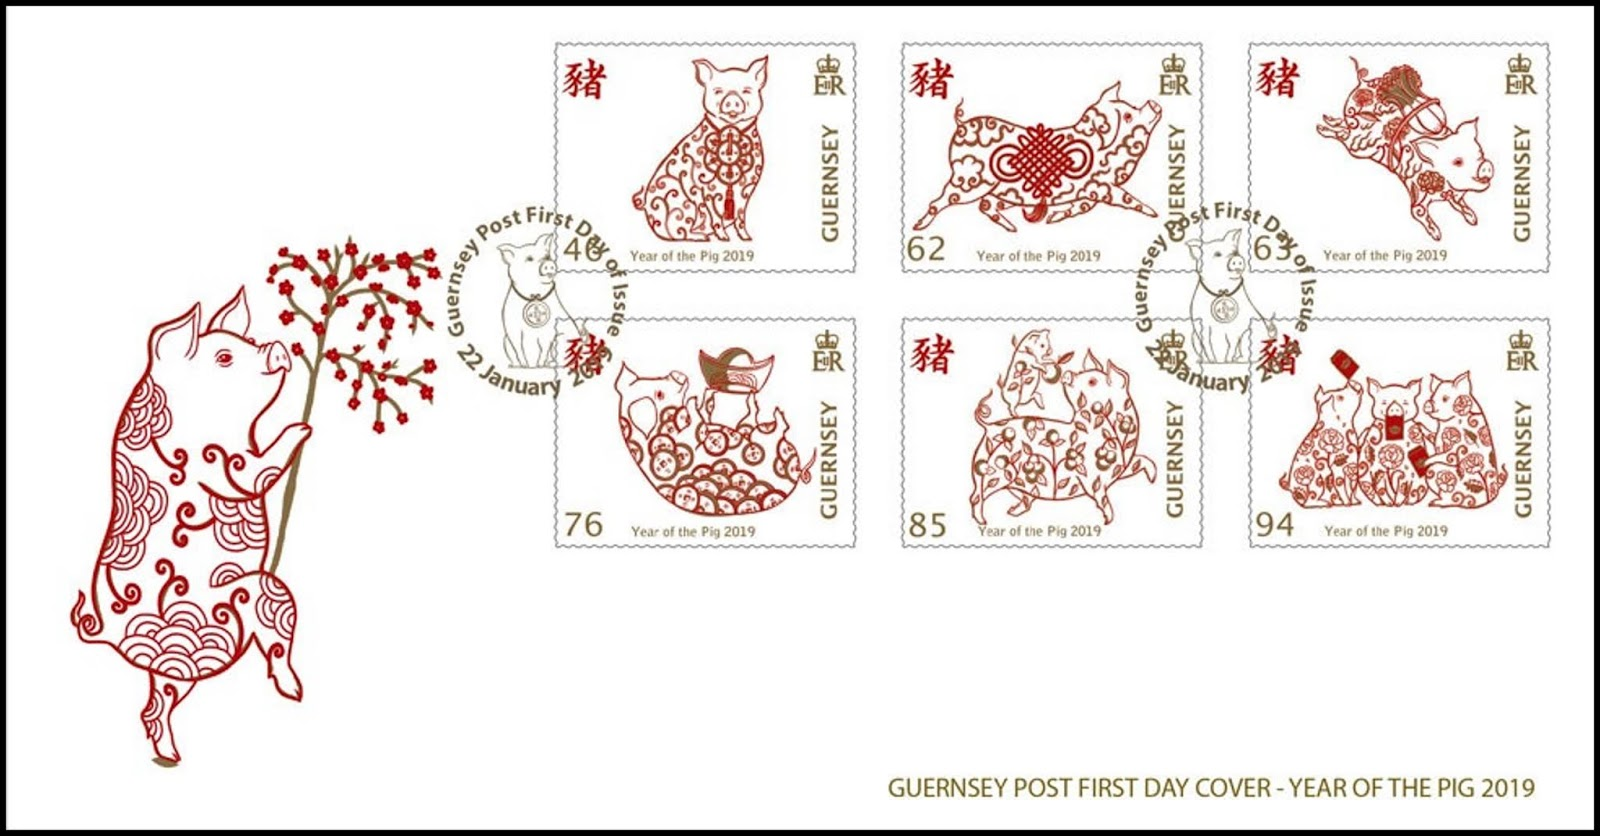 Guernsey - Year of the Pig (January 22, 2019) first day cover